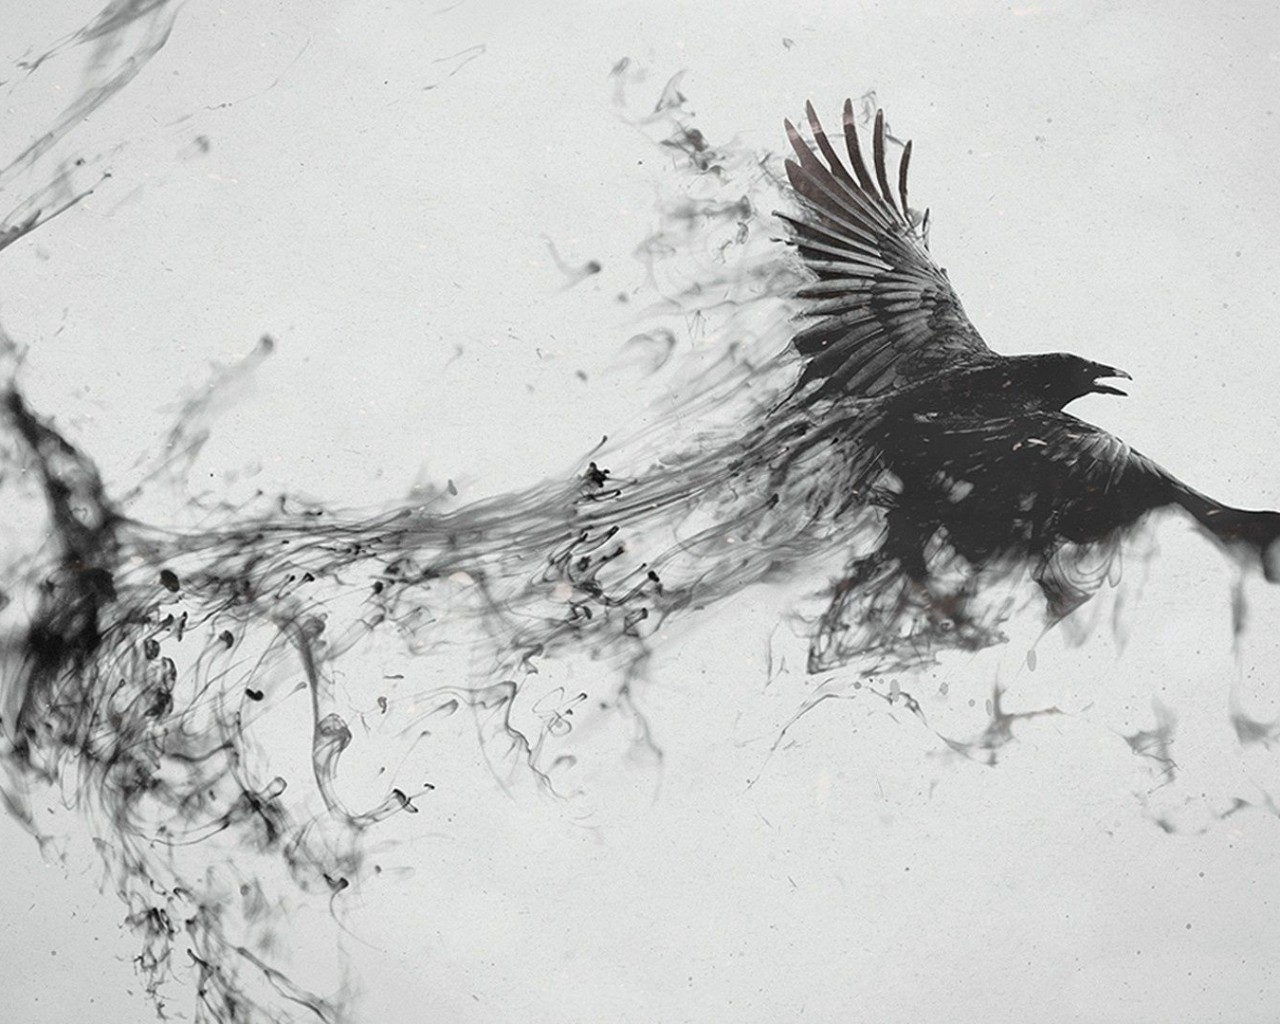 20988 download wallpaper Animals, Birds, Fantasy, Smoke, Crows screensavers and pictures for free